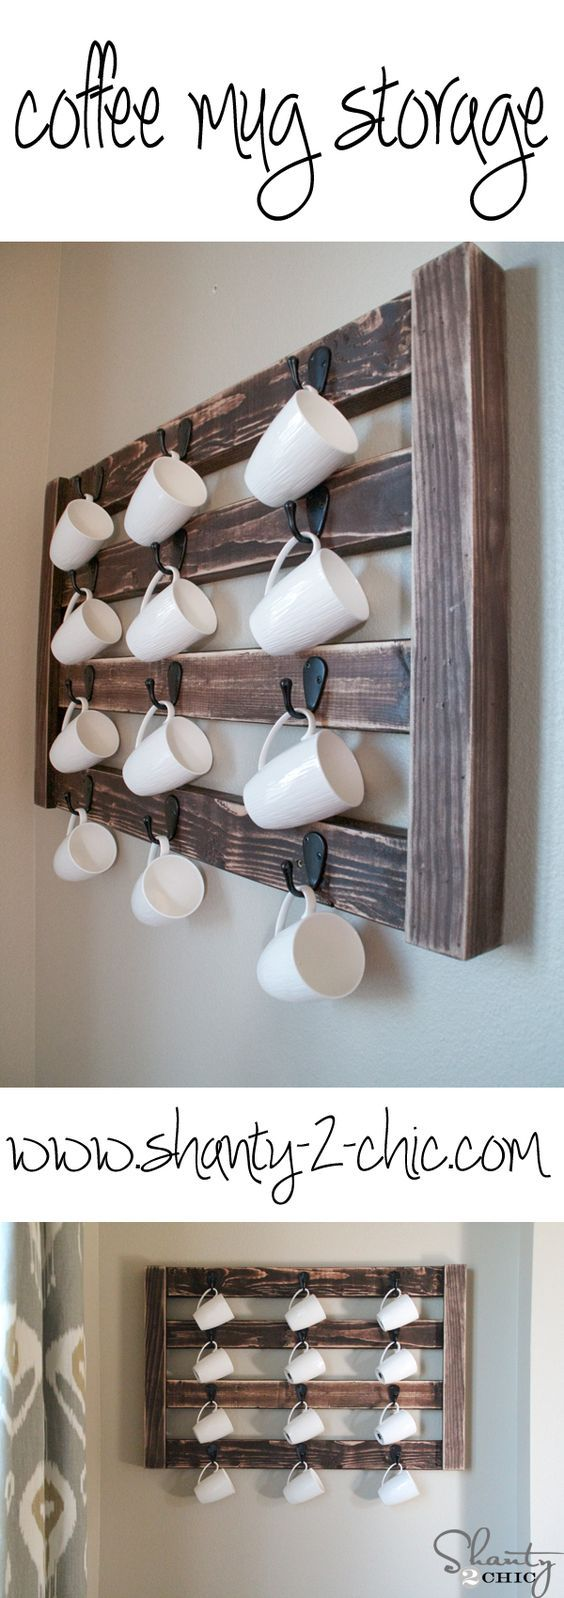 Easy DIY Coffee Mug Display! This is so cute and very easy to modify to fit your space!